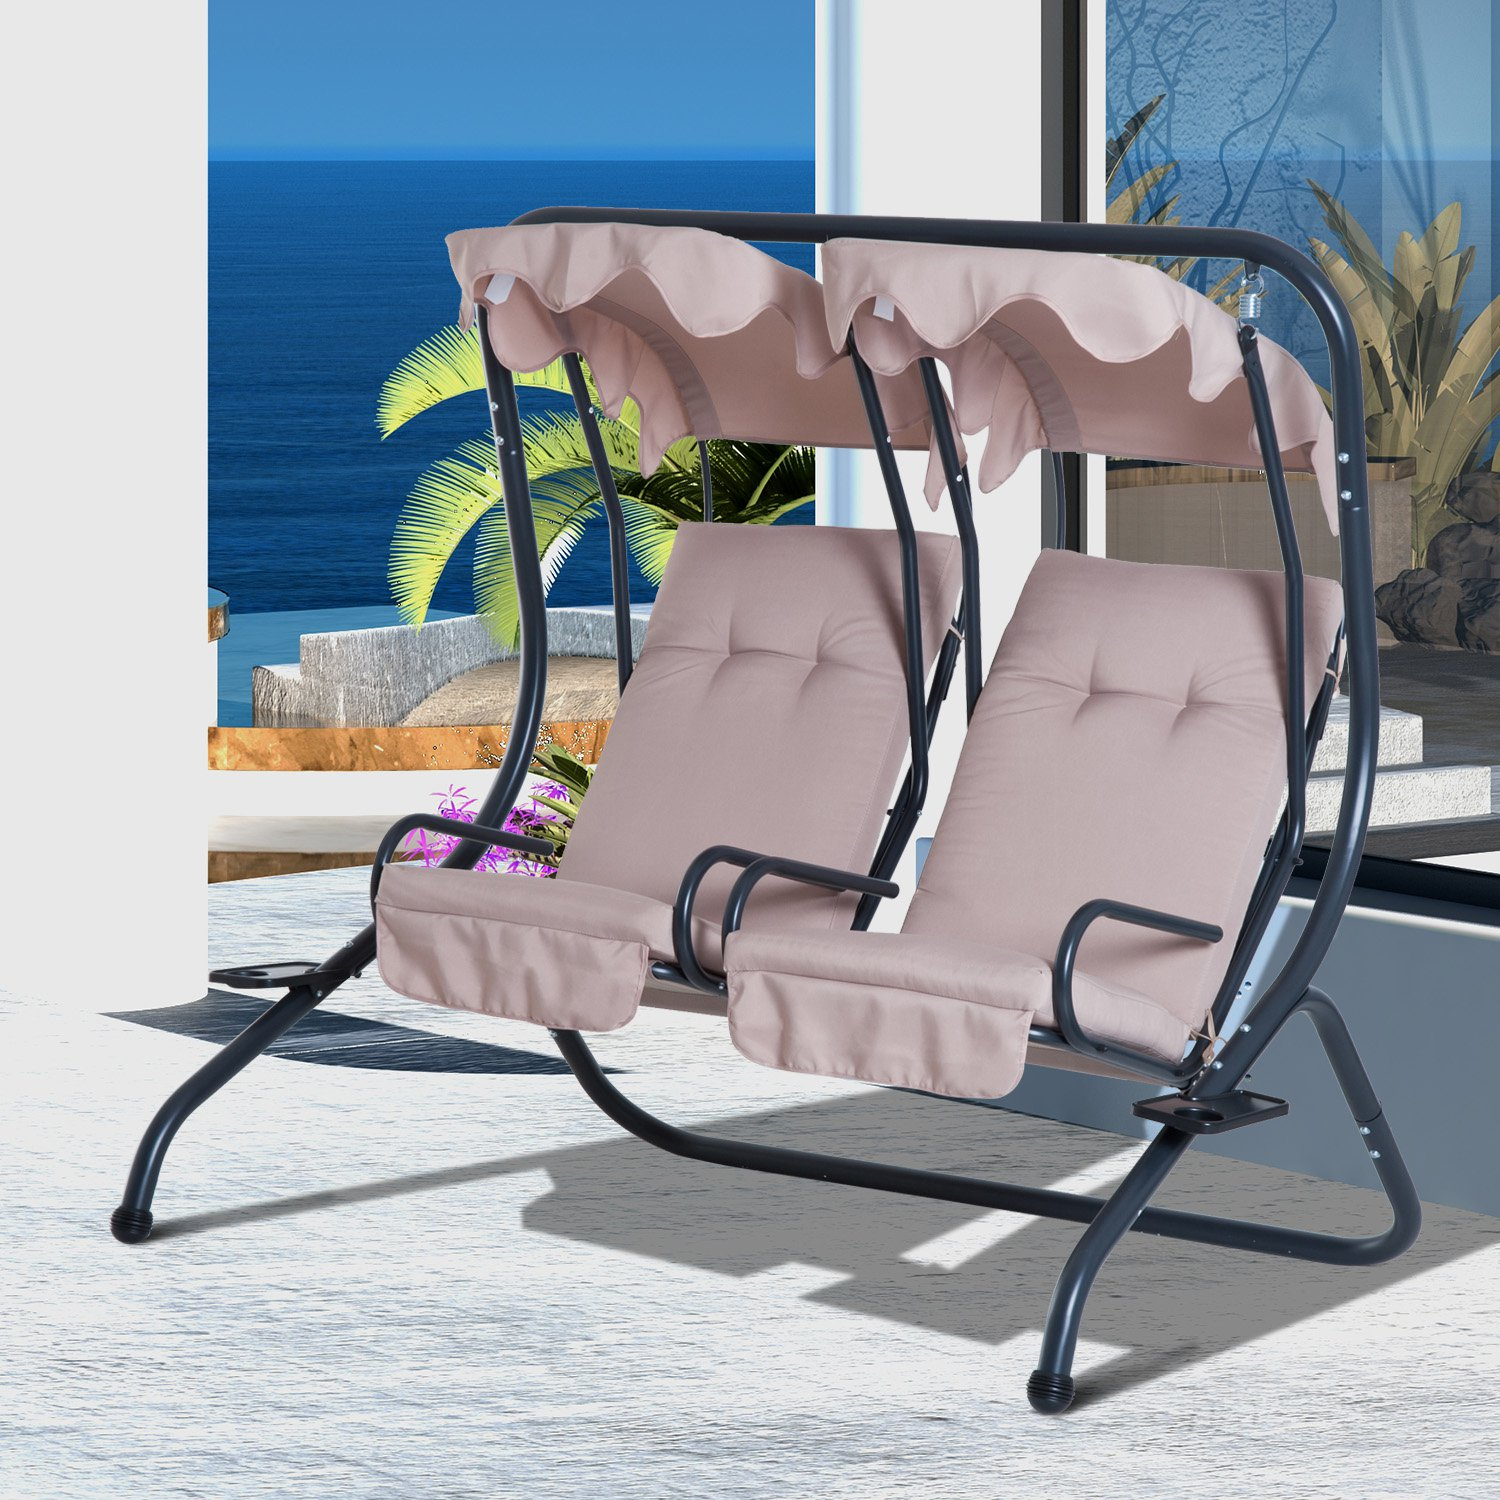 Etonnant 2 Seat Modern Outdoor Swing Chairs With Handrails And Removable Canopy    Beige   Walmart.com